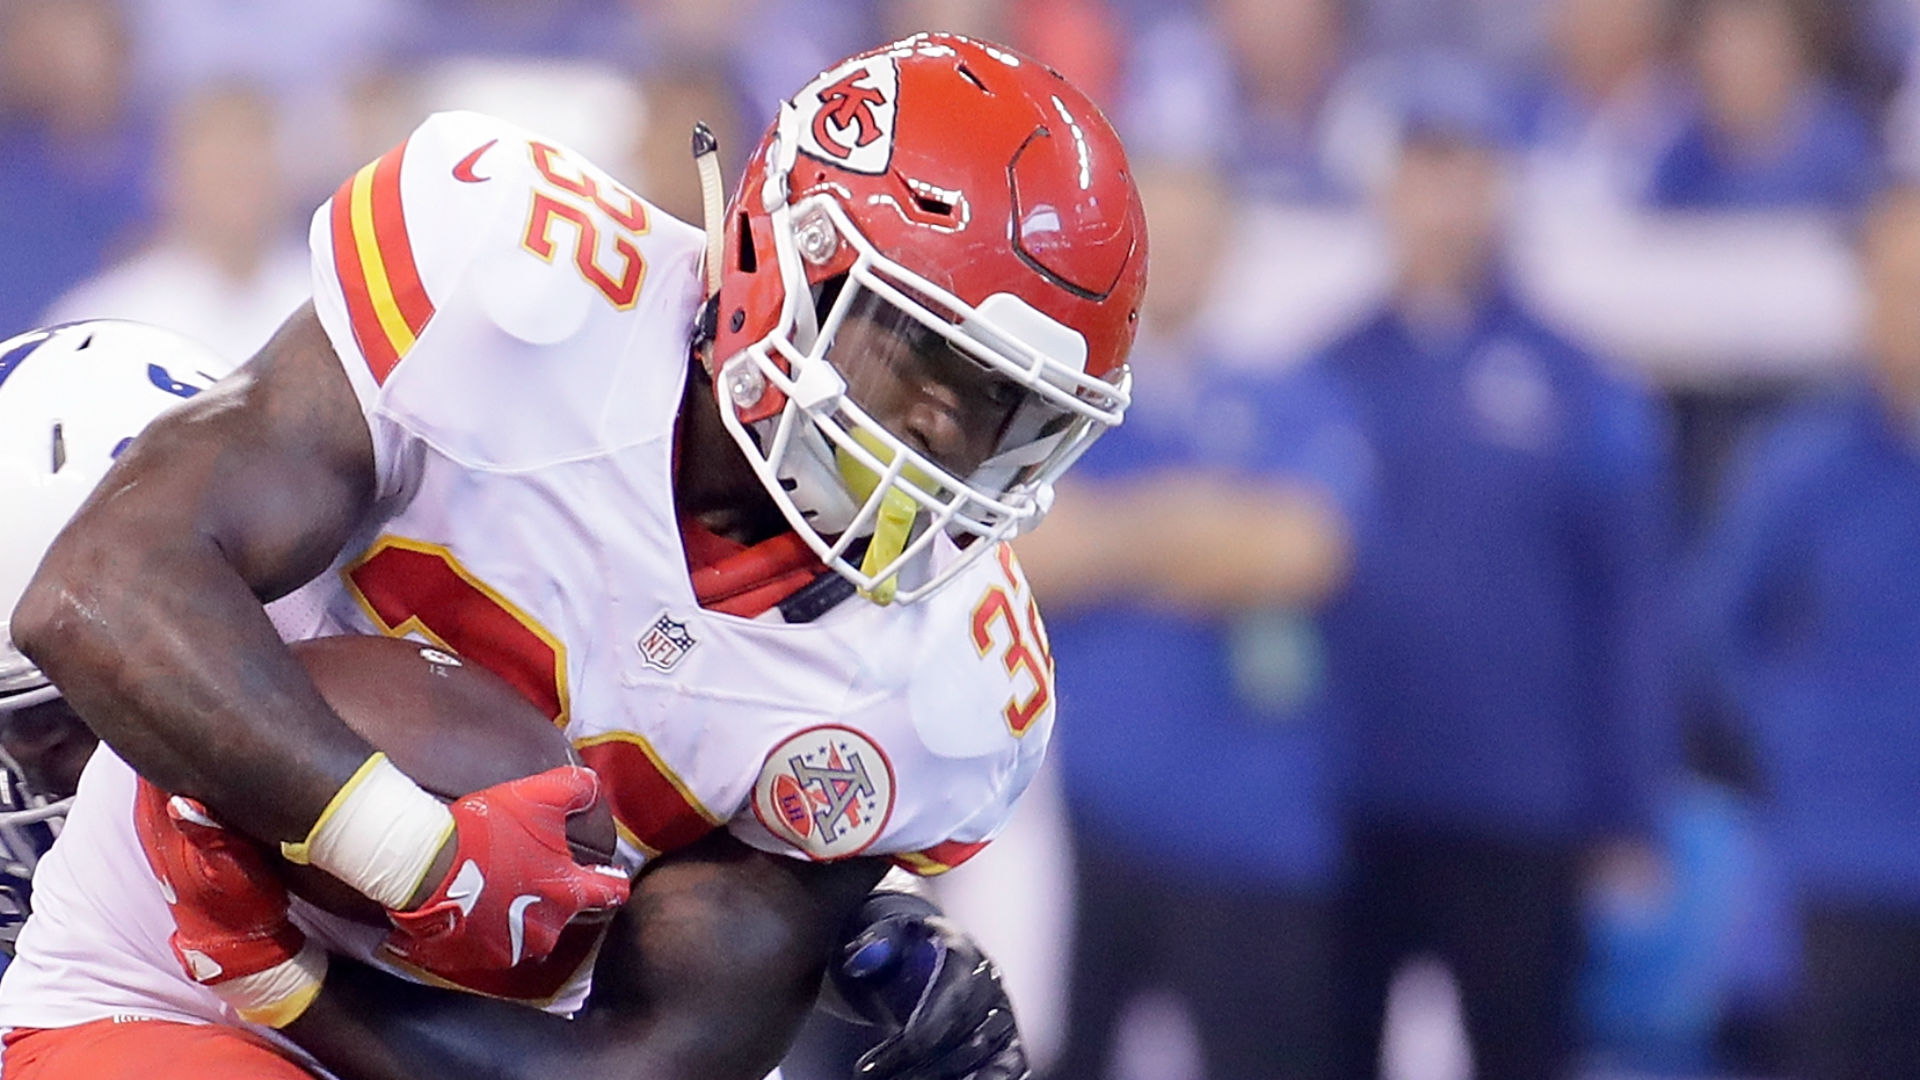 Kareem Hunt to begin season as Chiefs' featured back